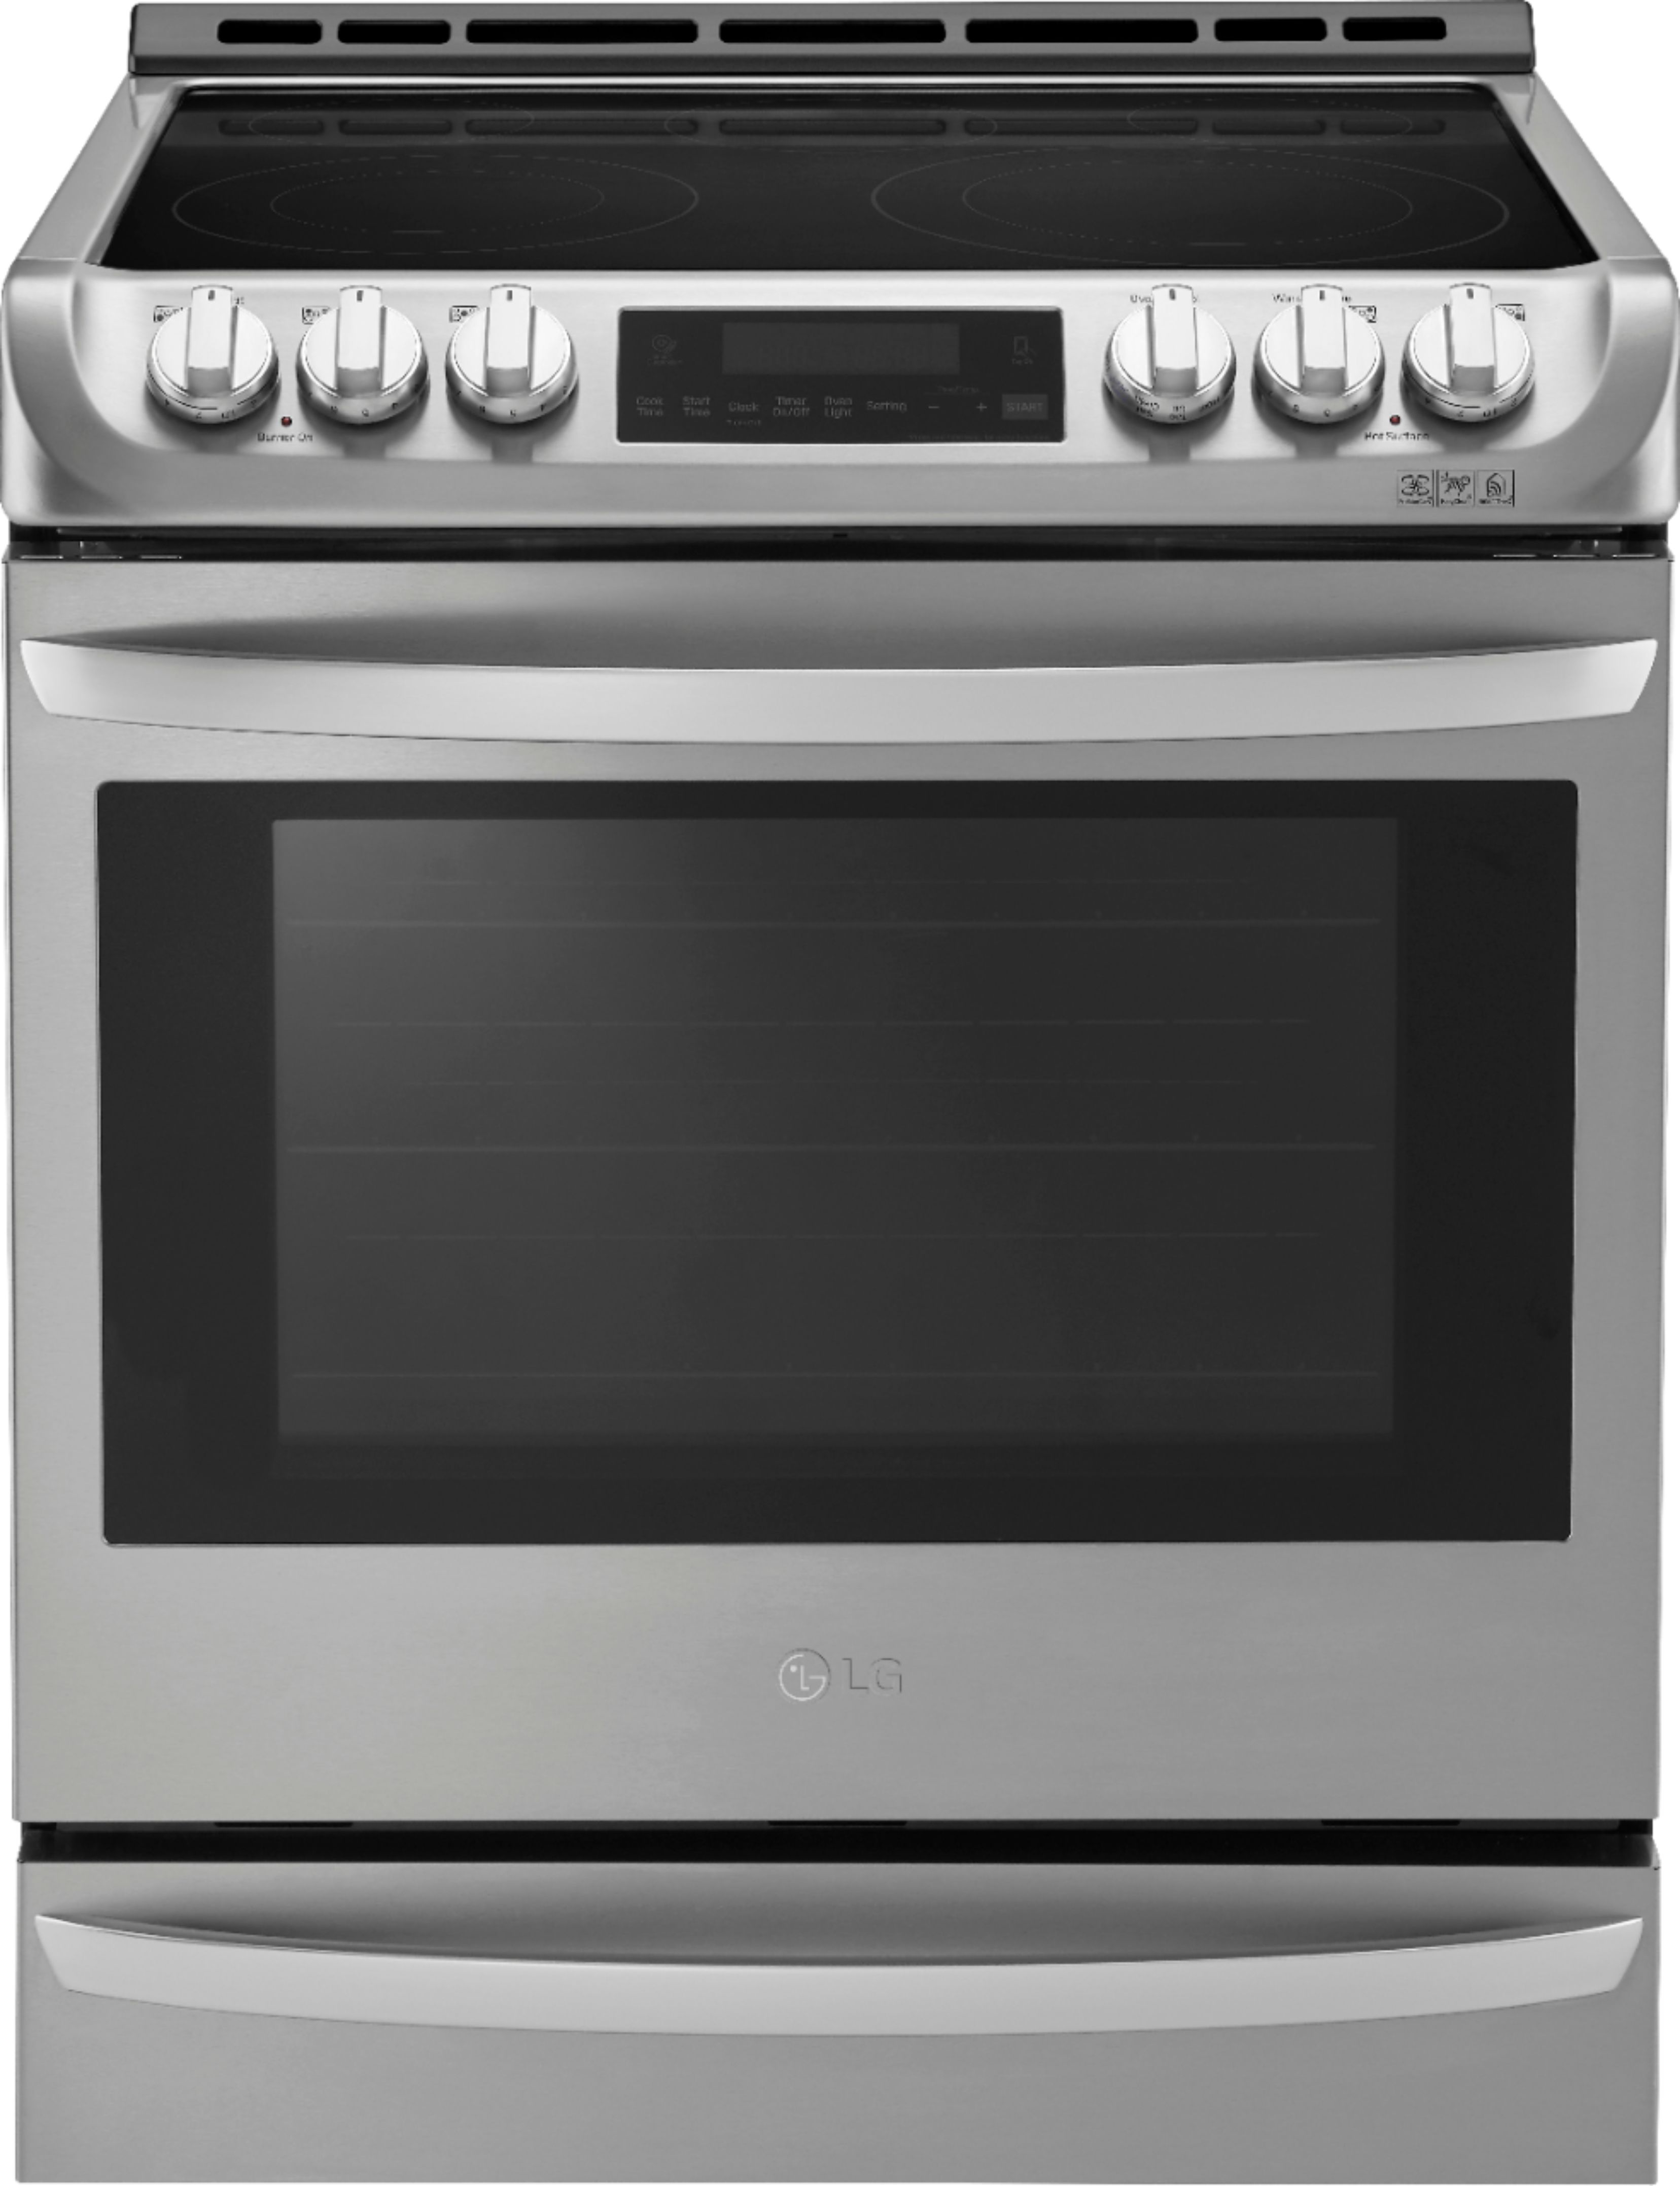 lg 6 3 cu ft self cleaning slide in electric range with probake convection stainless steel